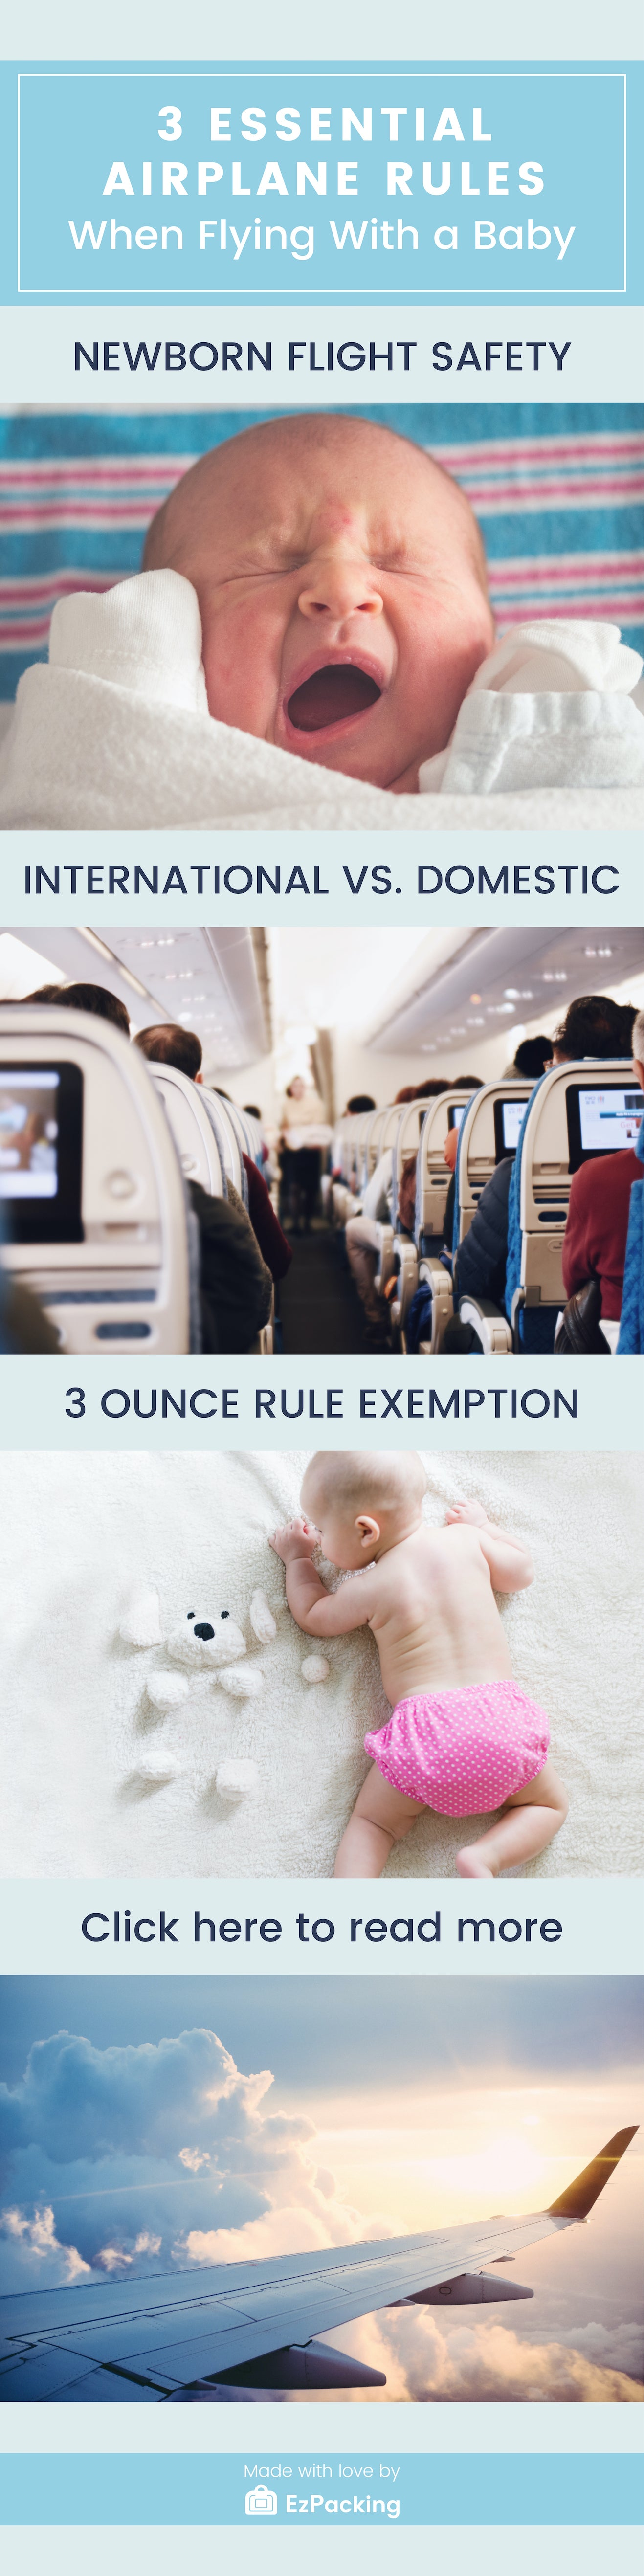 Flying with newborn tips